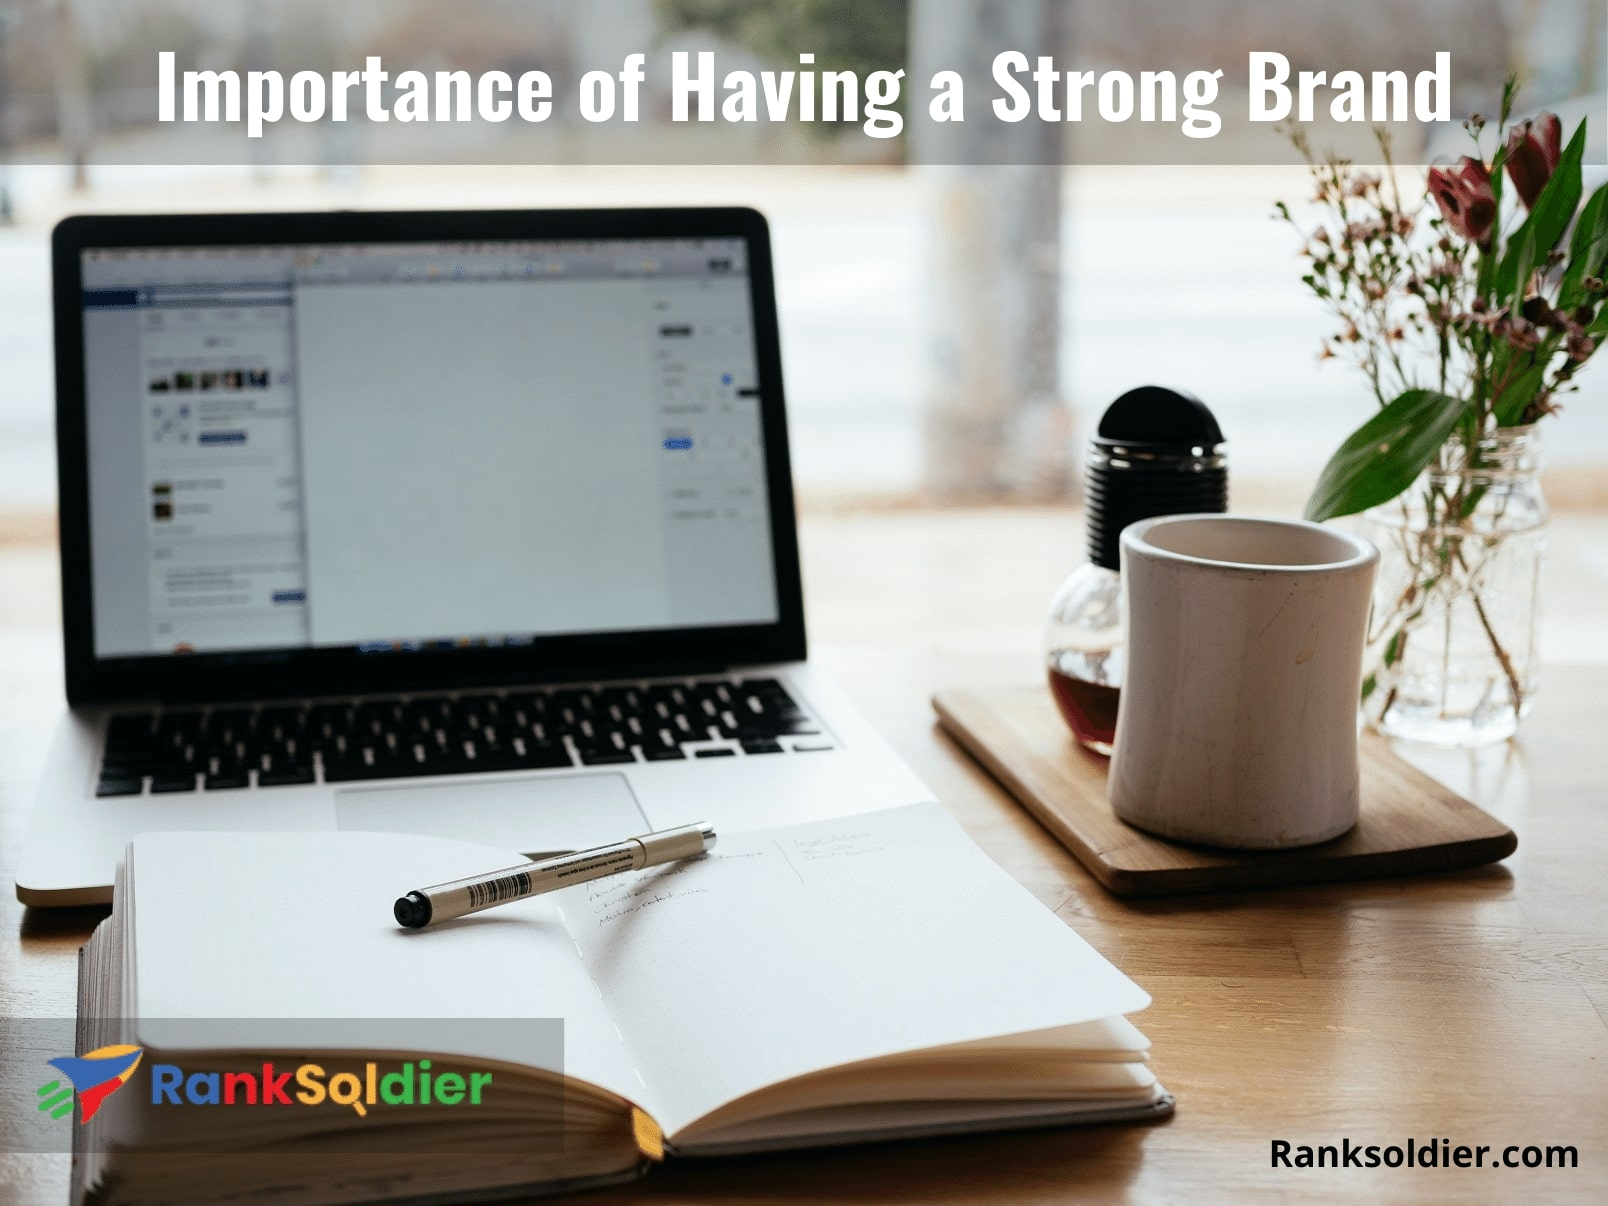 Importance of Having a Strong Brand